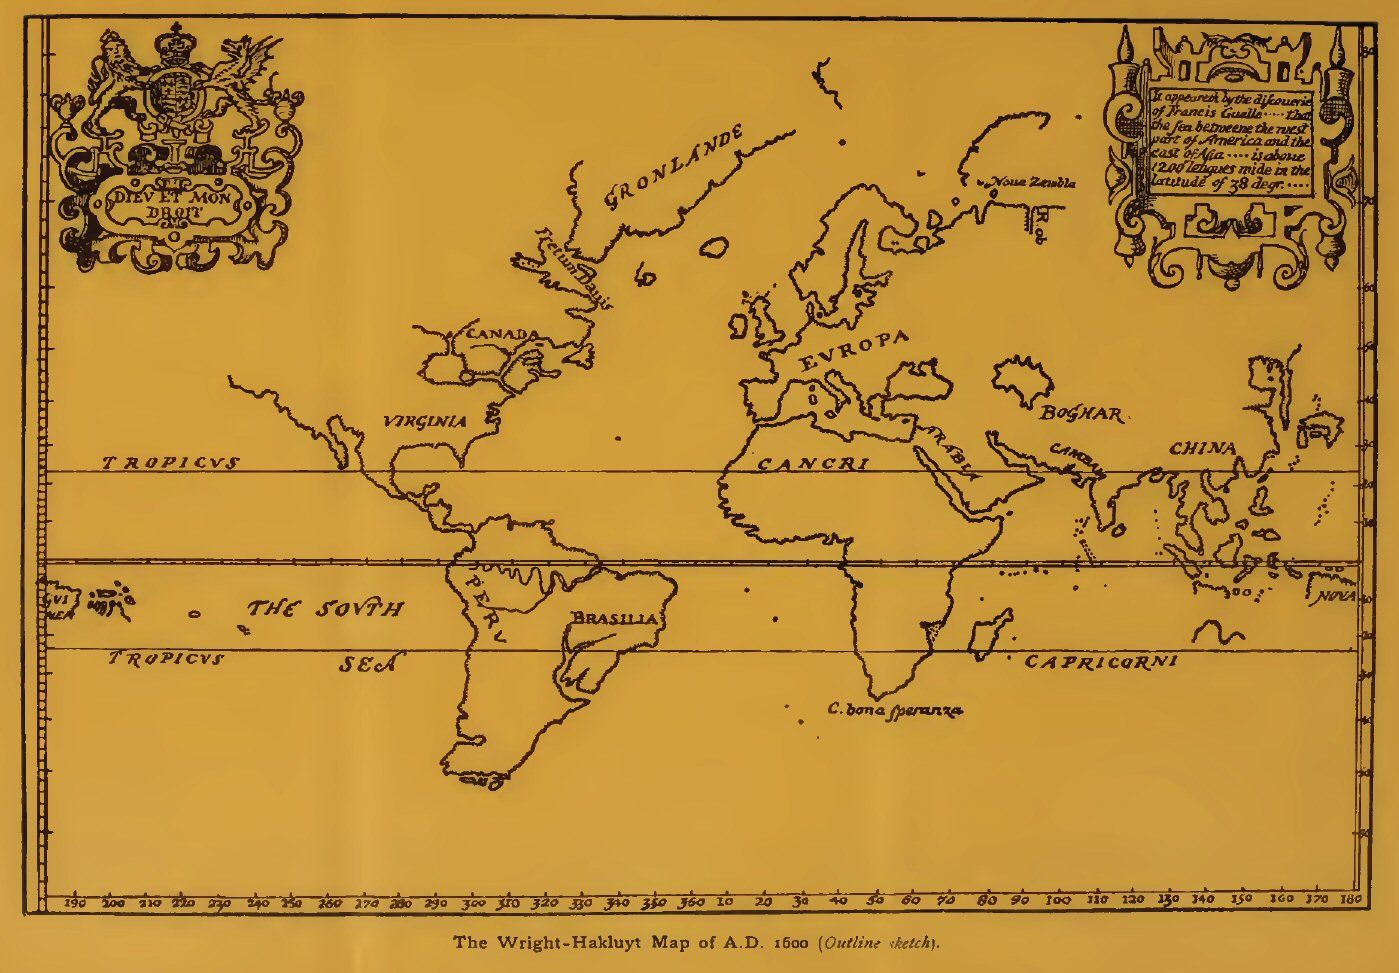 1600 The WrightHakluyt Map of the World  Exploration Maps of